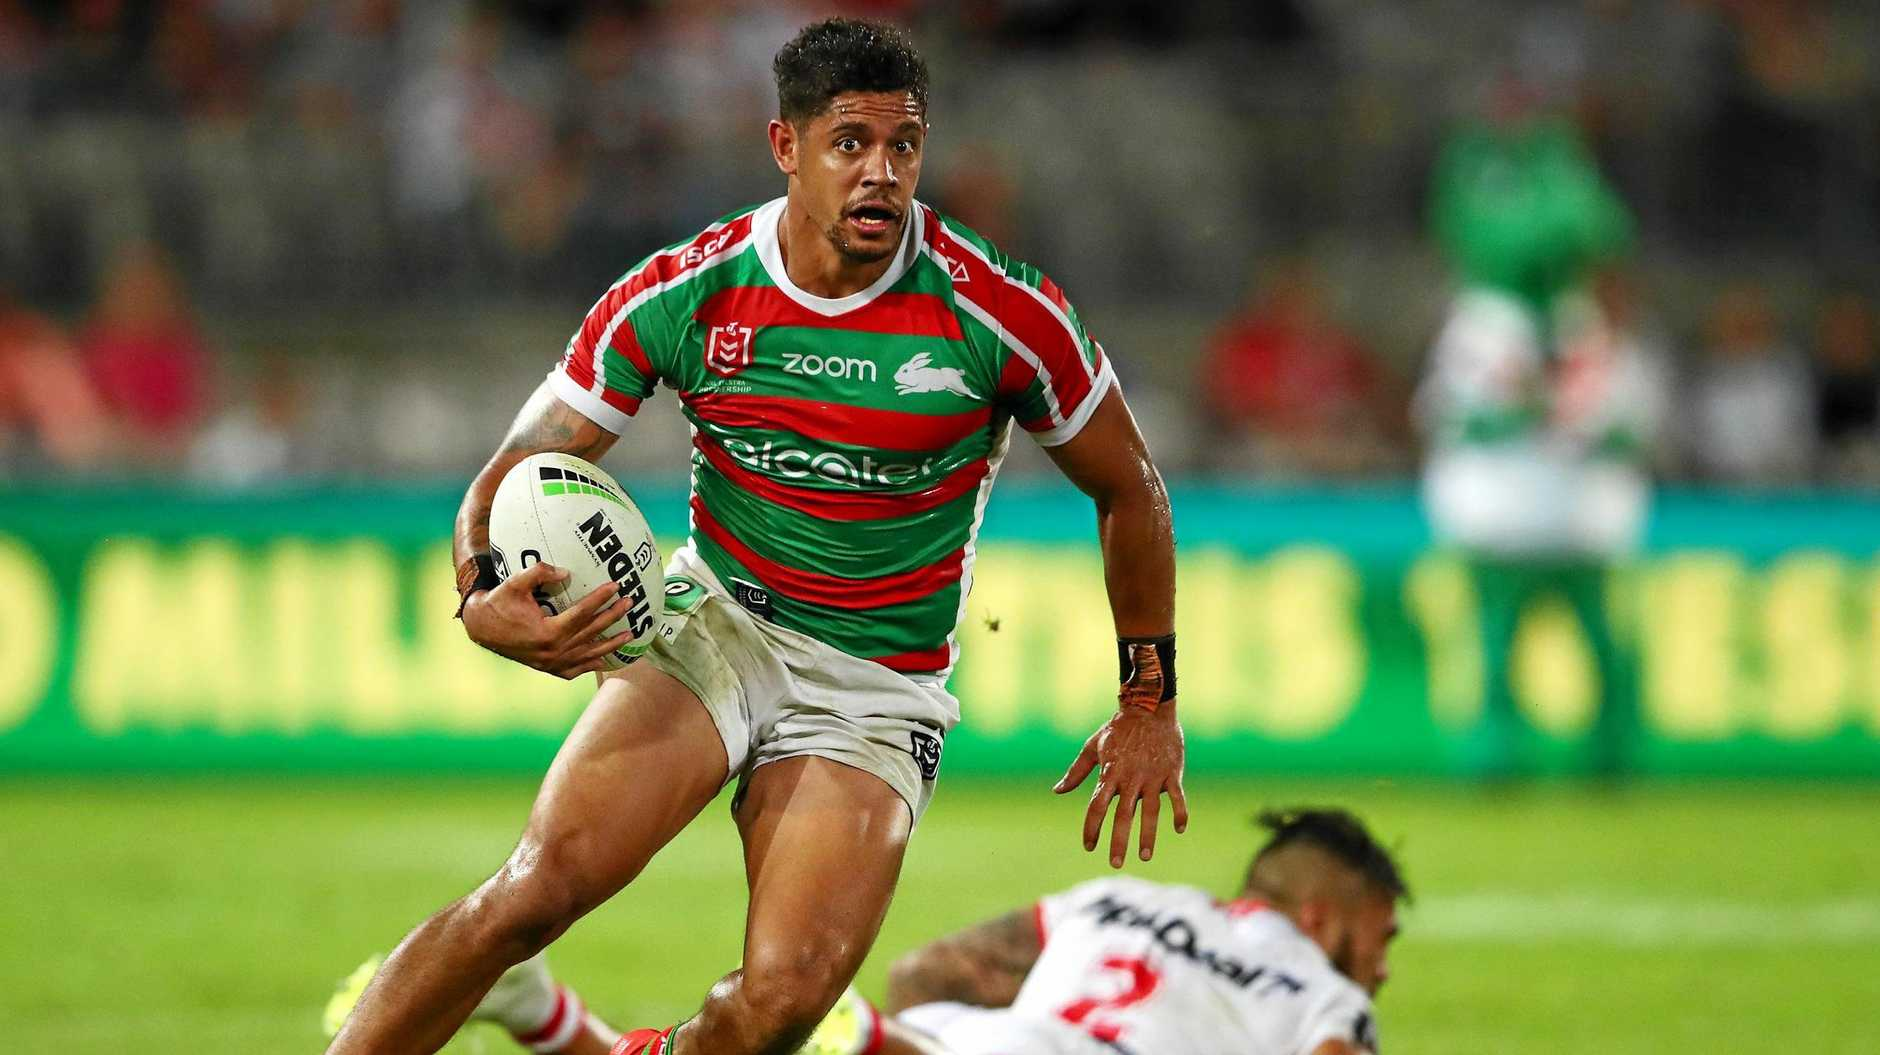 BOUNCING BACK: Dane Gagai of the Rabbitohs makes a break during the round two NRL match between the St George Illawarra Dragons and the South Sydney Rabbitohs  on March 21 in Sydney.  .